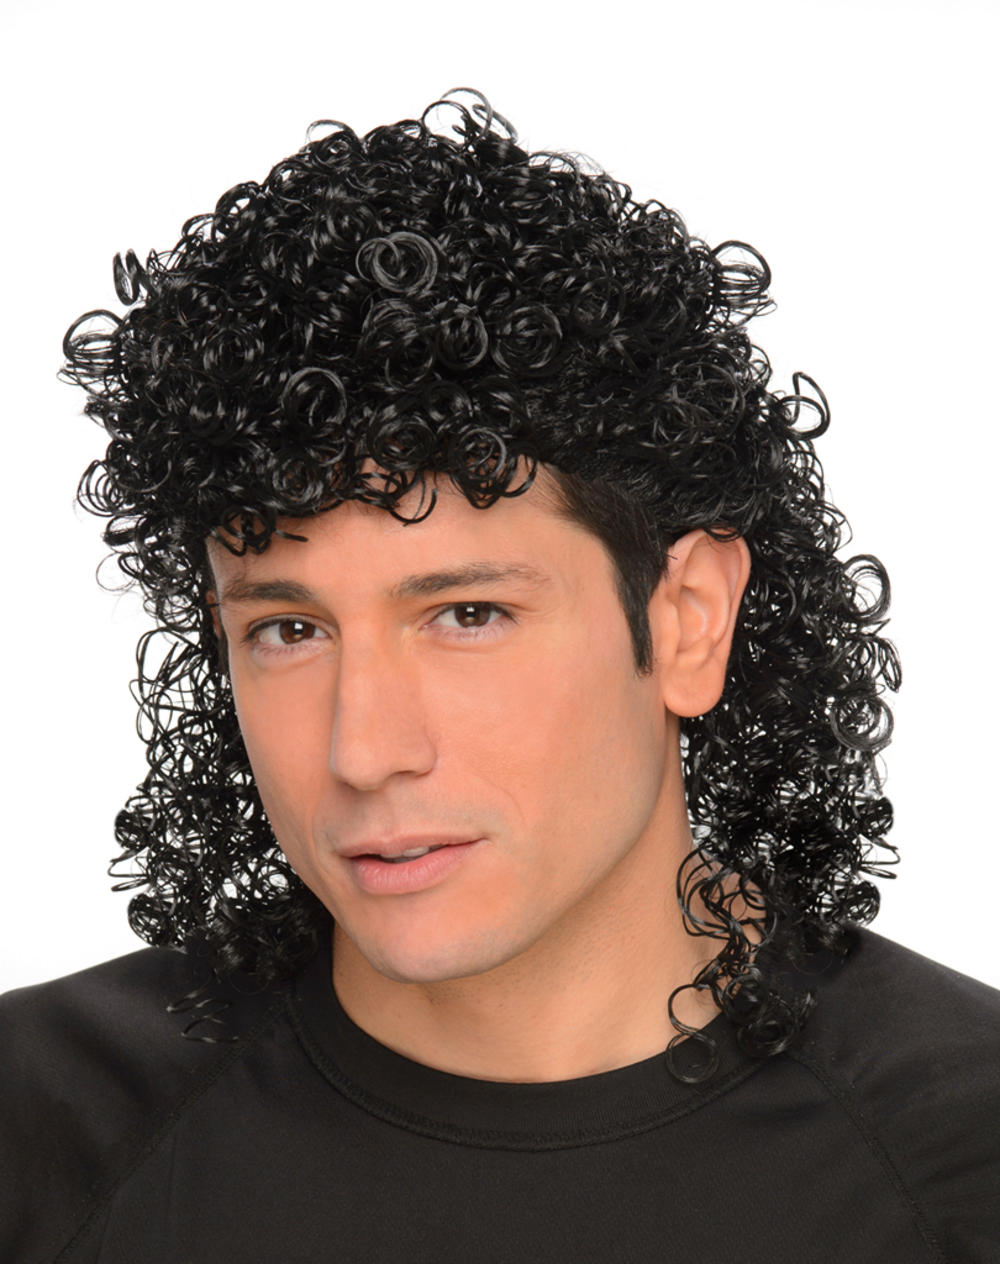 black curly mullet mens wig mens fancy dress wigs